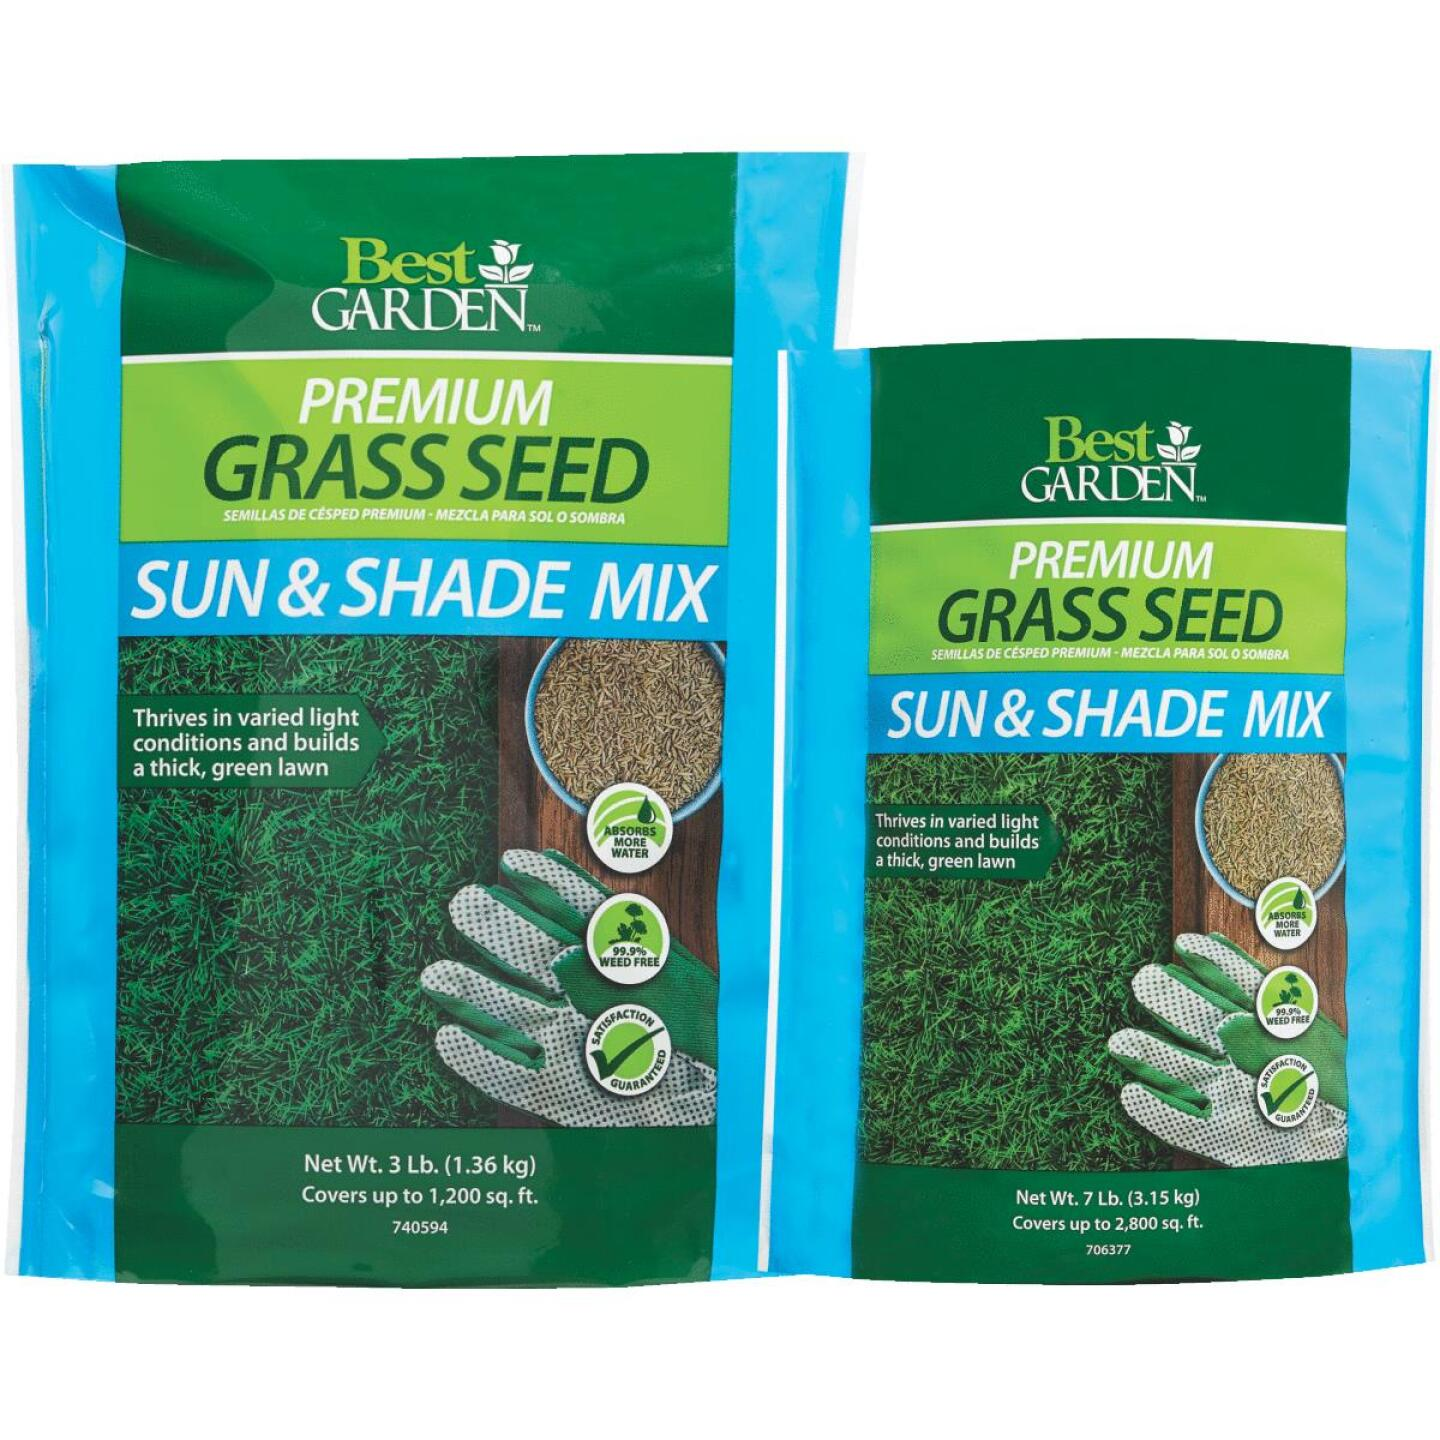 Best Garden 3 Lb. 750 Sq. Ft. Coverage Sun & Shade Grass Seed Image 2